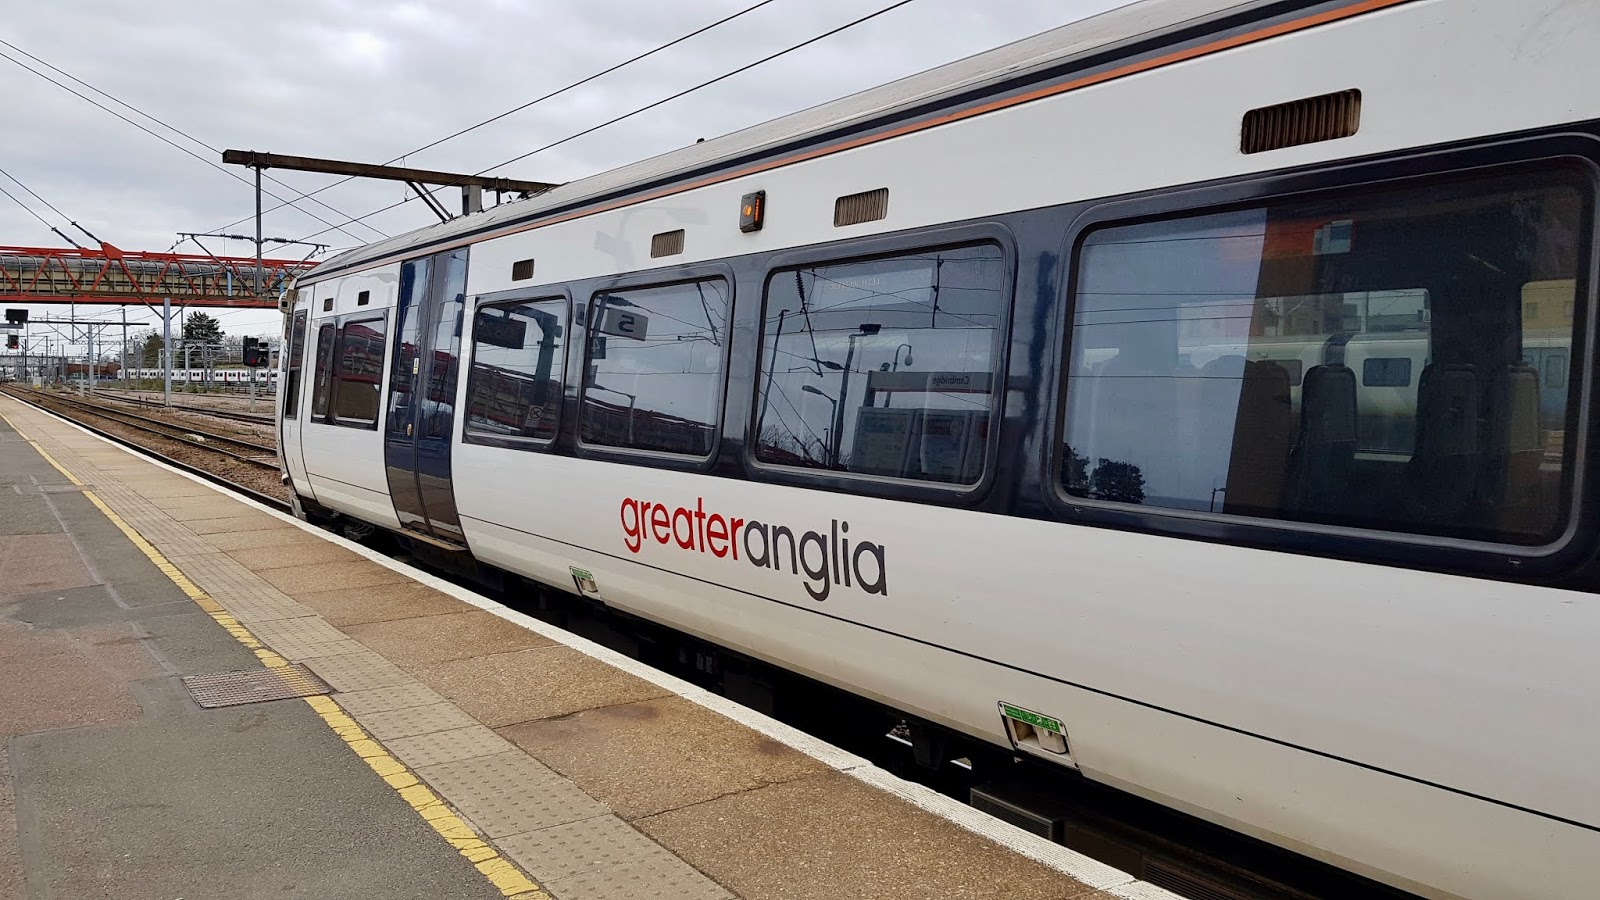 A Greater Anglia train standing at Cambridge train station